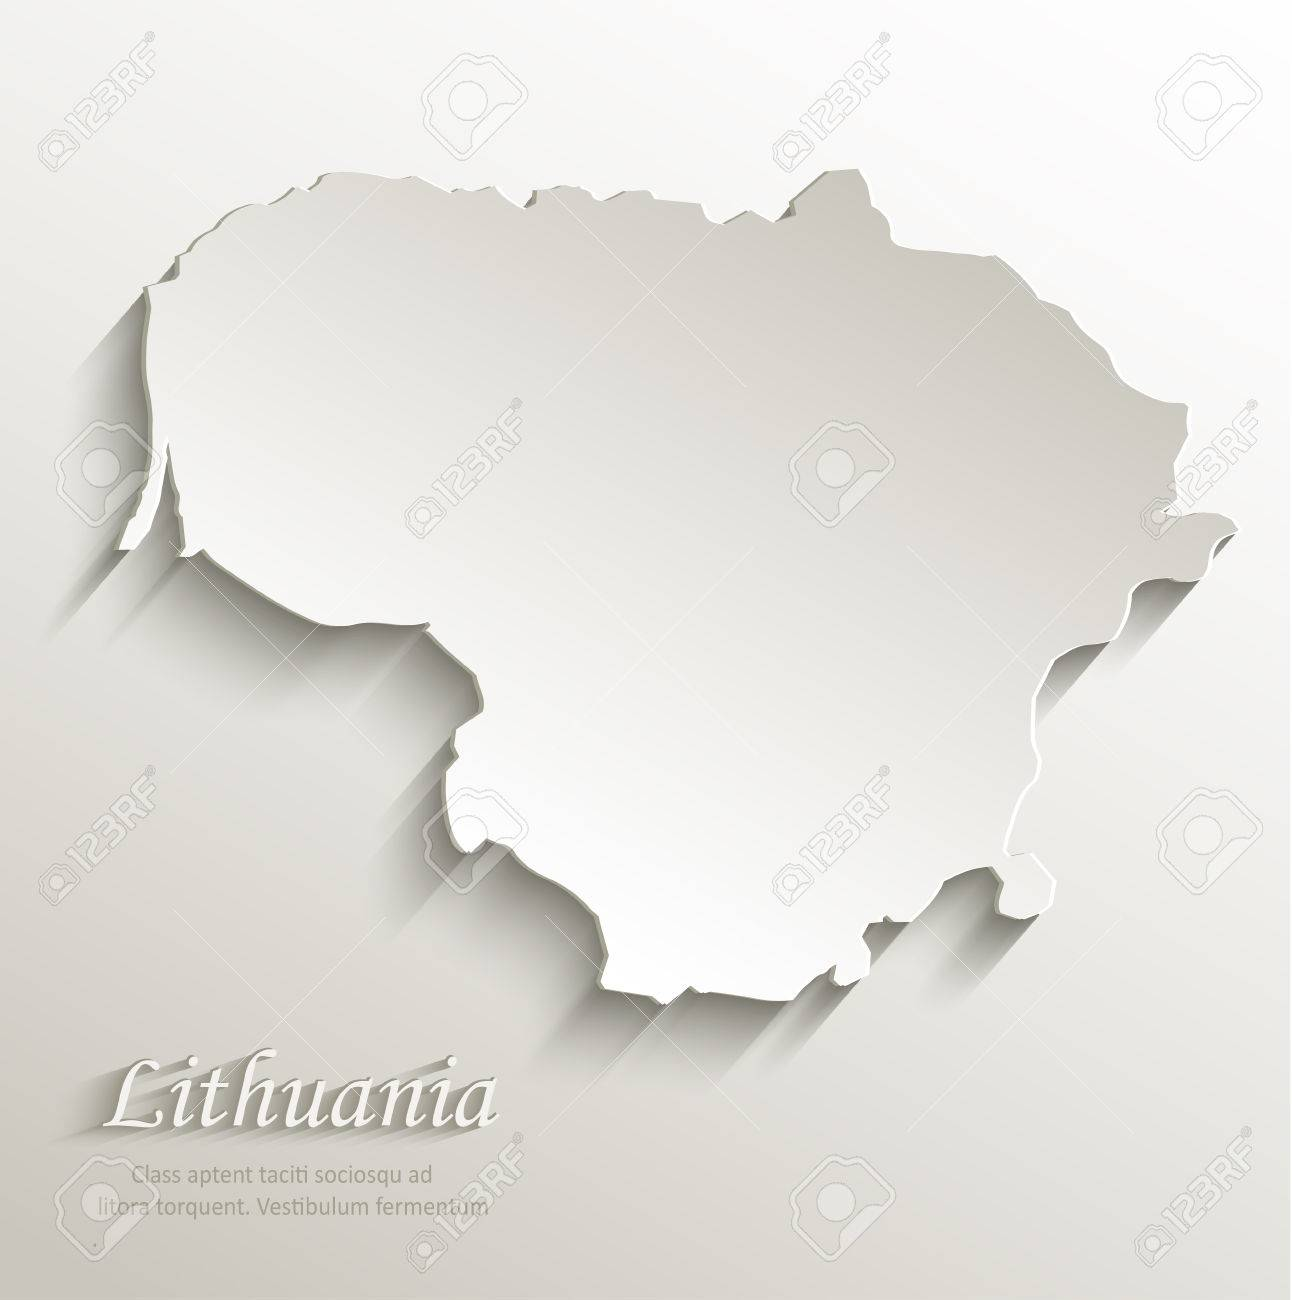 Lithuania Map Card Paper D Royalty Free Cliparts Vectors And - Lithuania map vector